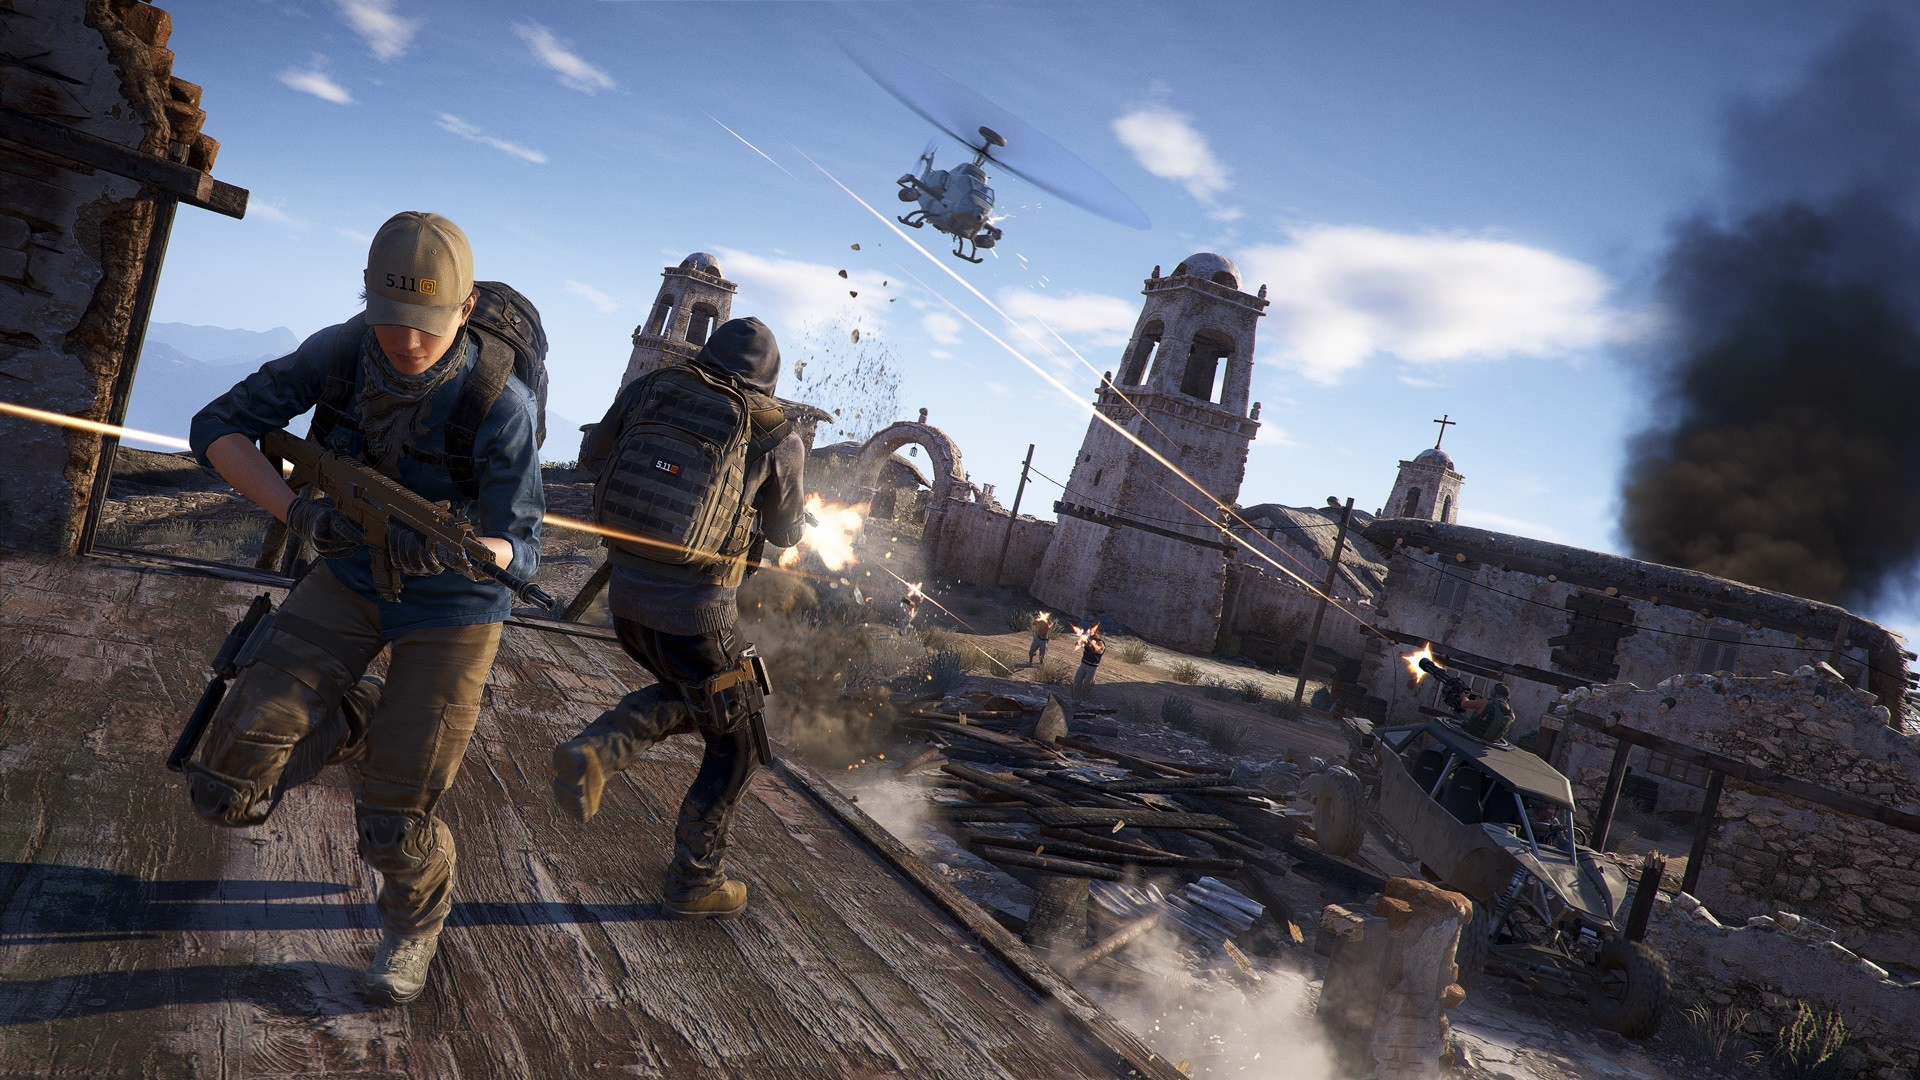 Ubisoft Launches a Ghost Recon: Wildlands Demo on PS4 and Xbox One